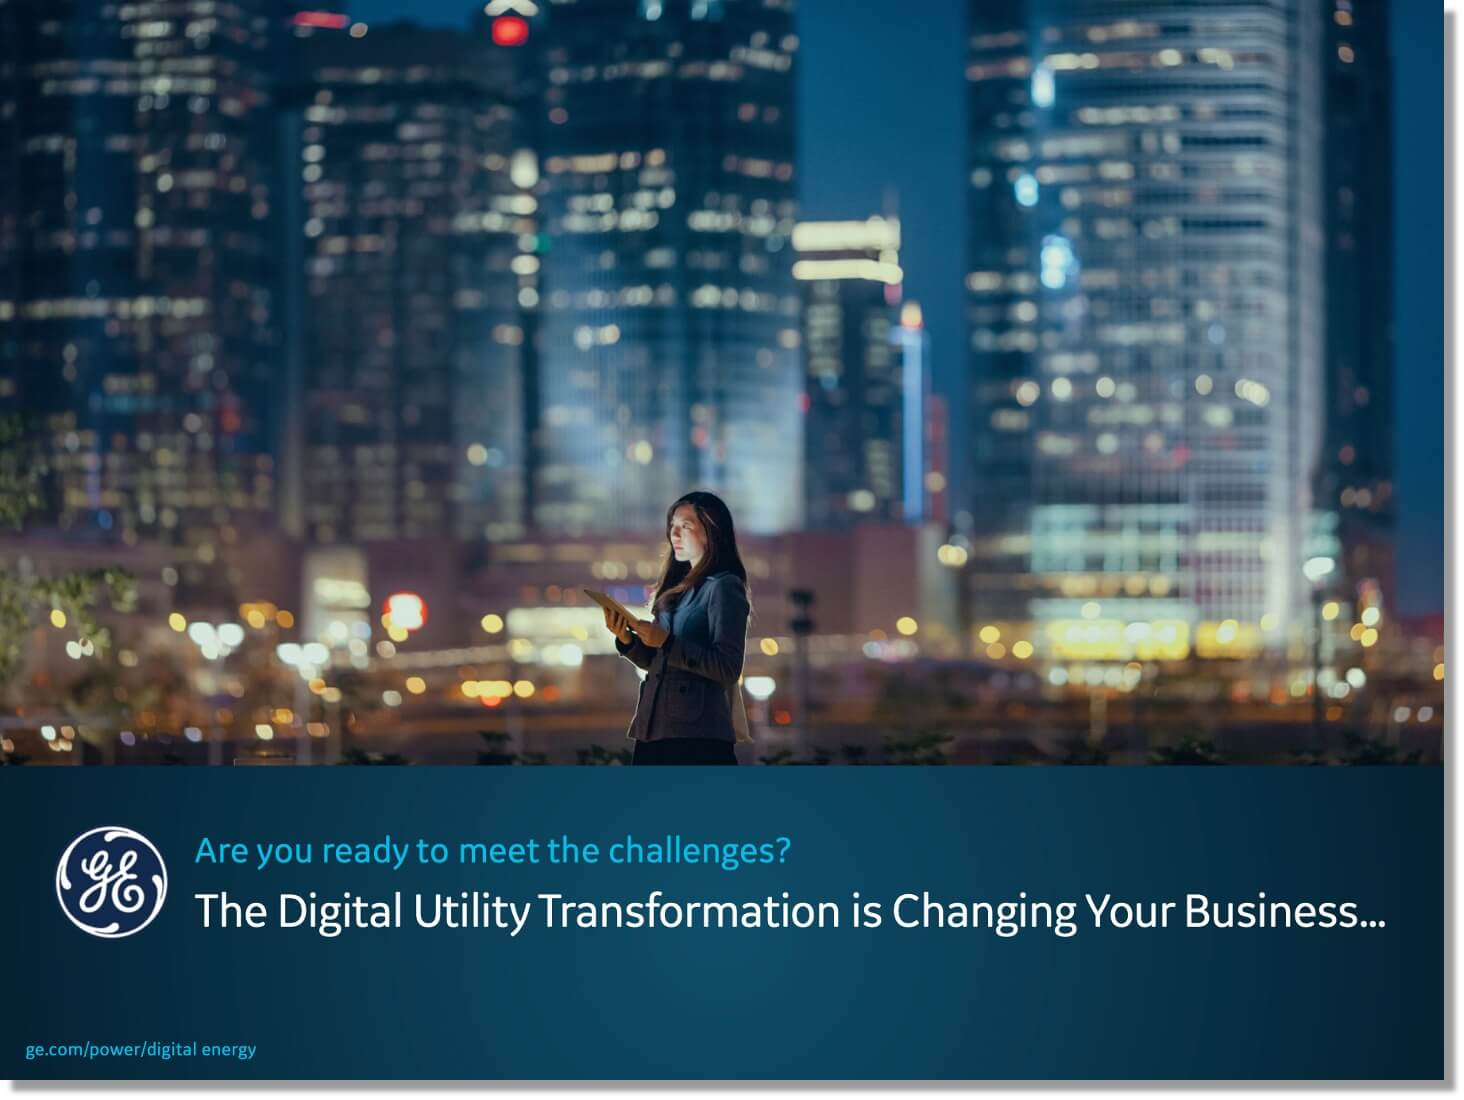 Digital Utility Transformation is changing business | GE Digital white paper